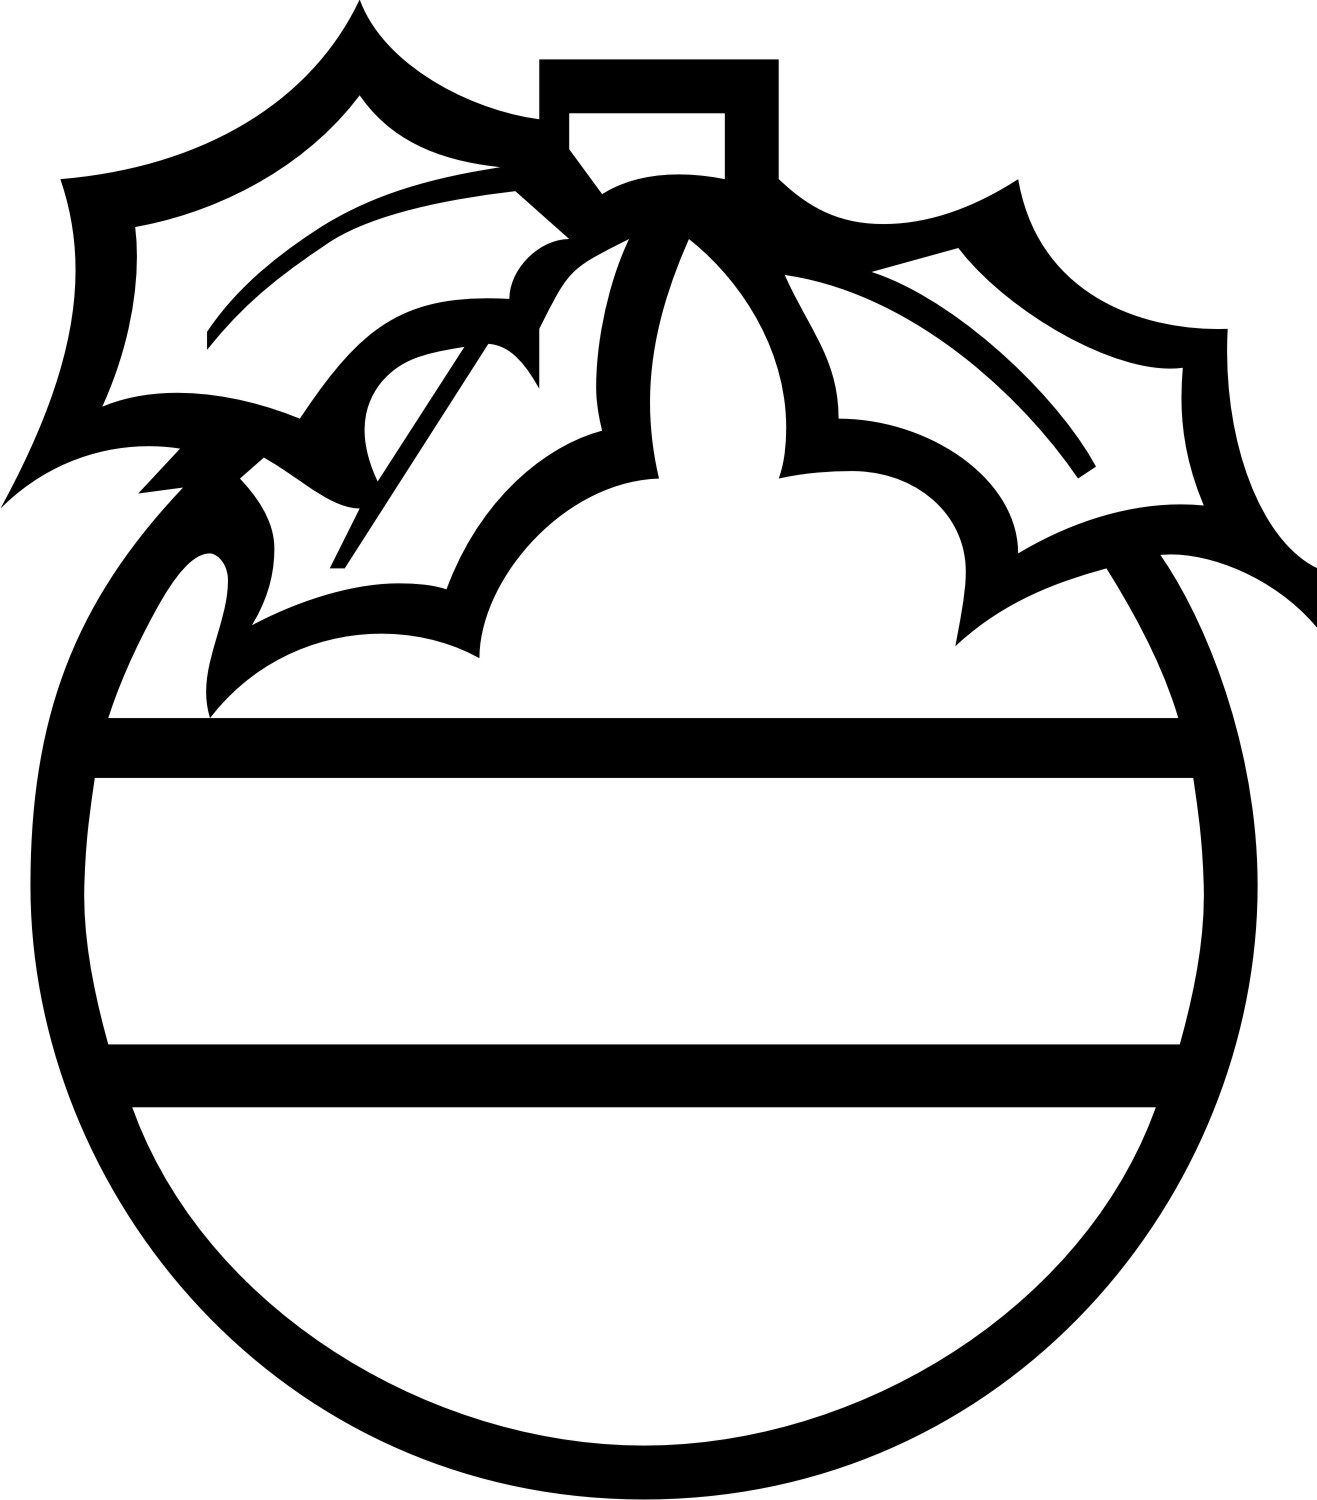 Christmas Ornament Clipart Black And White